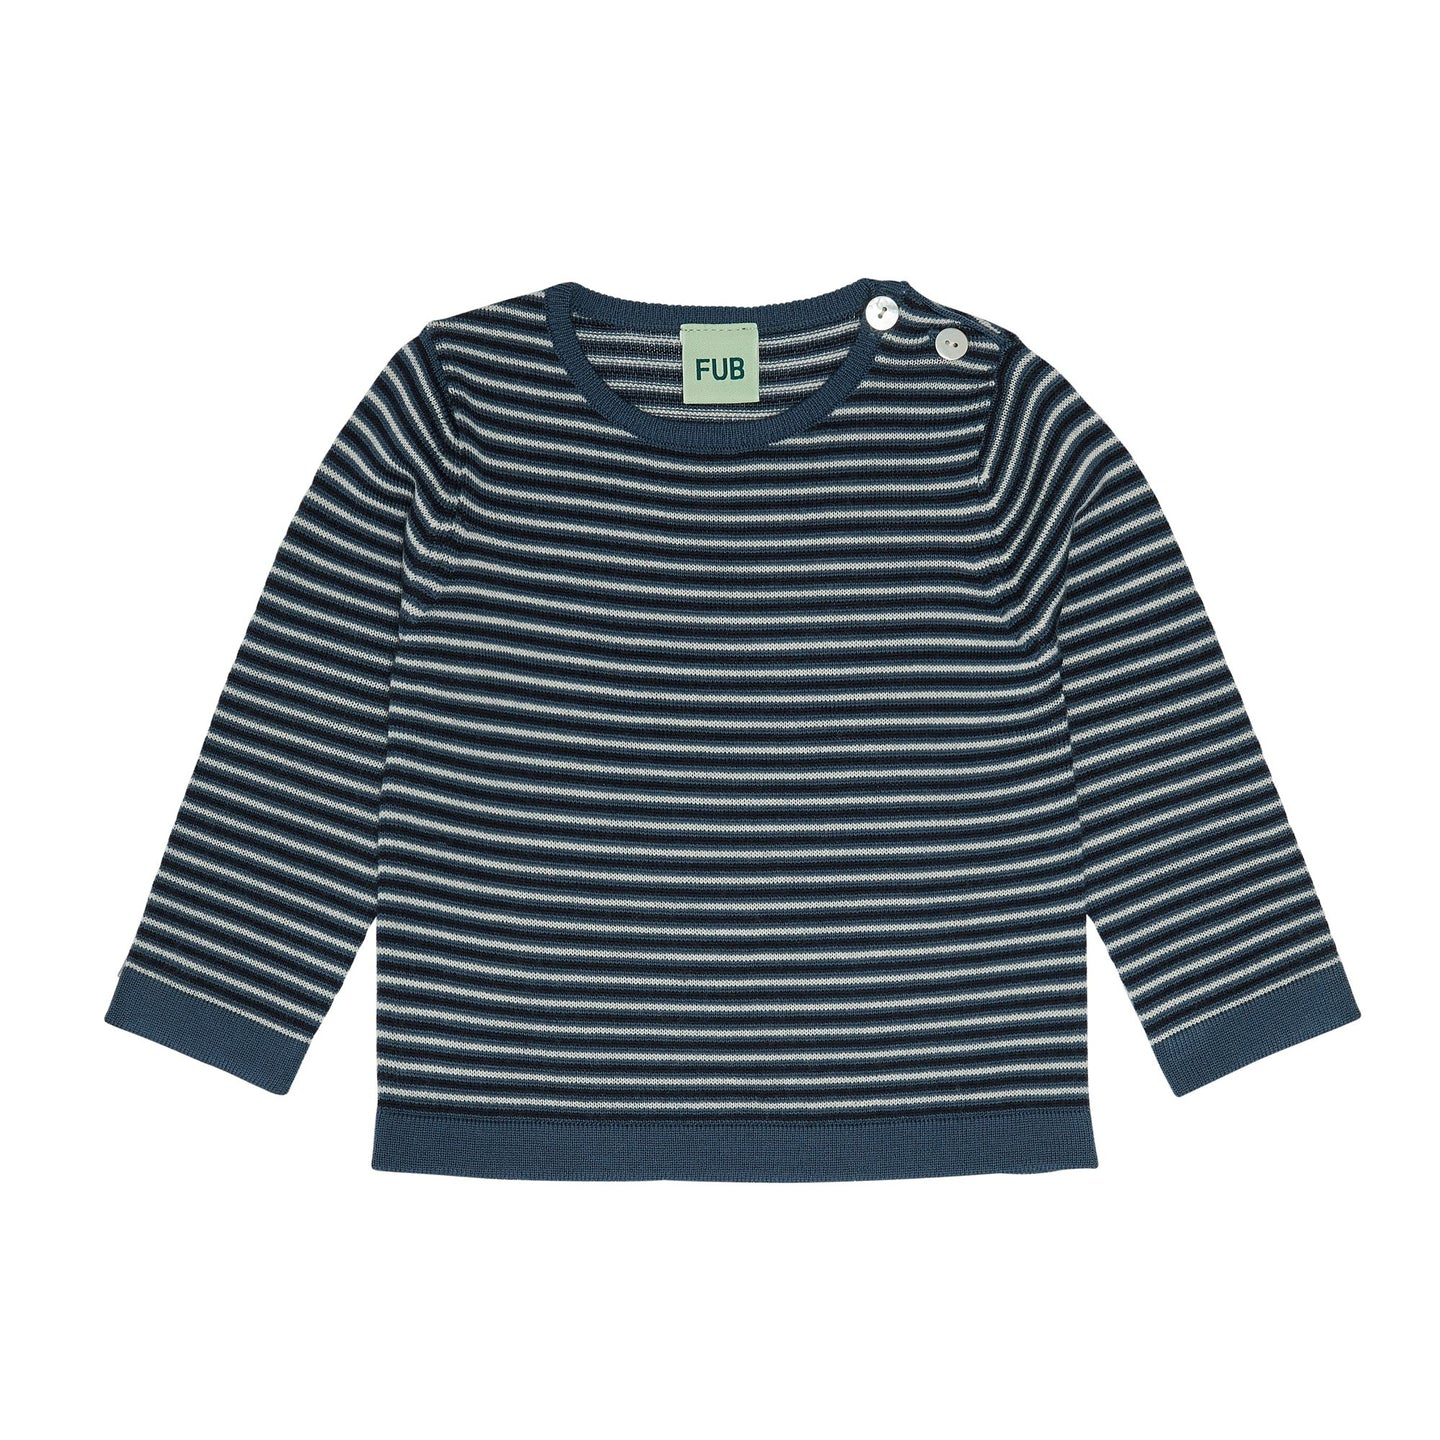 BABY STRIPED BLOUSE